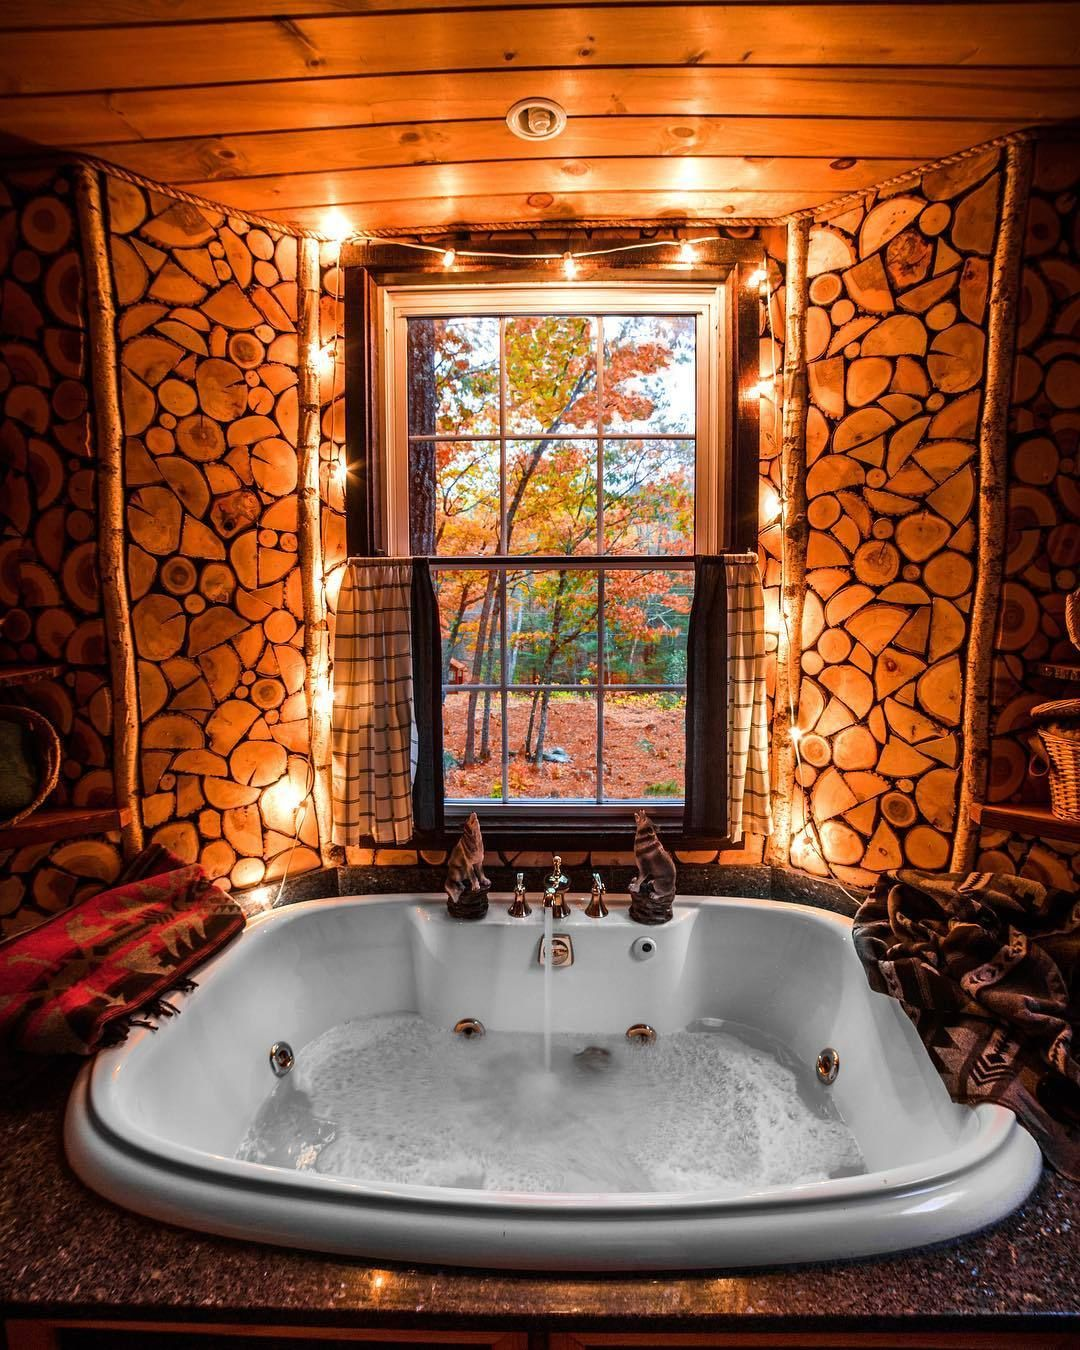 Pin By Nikita Roe On Cleanse Luxury Tree Houses Indoor Jacuzzi Rustic House